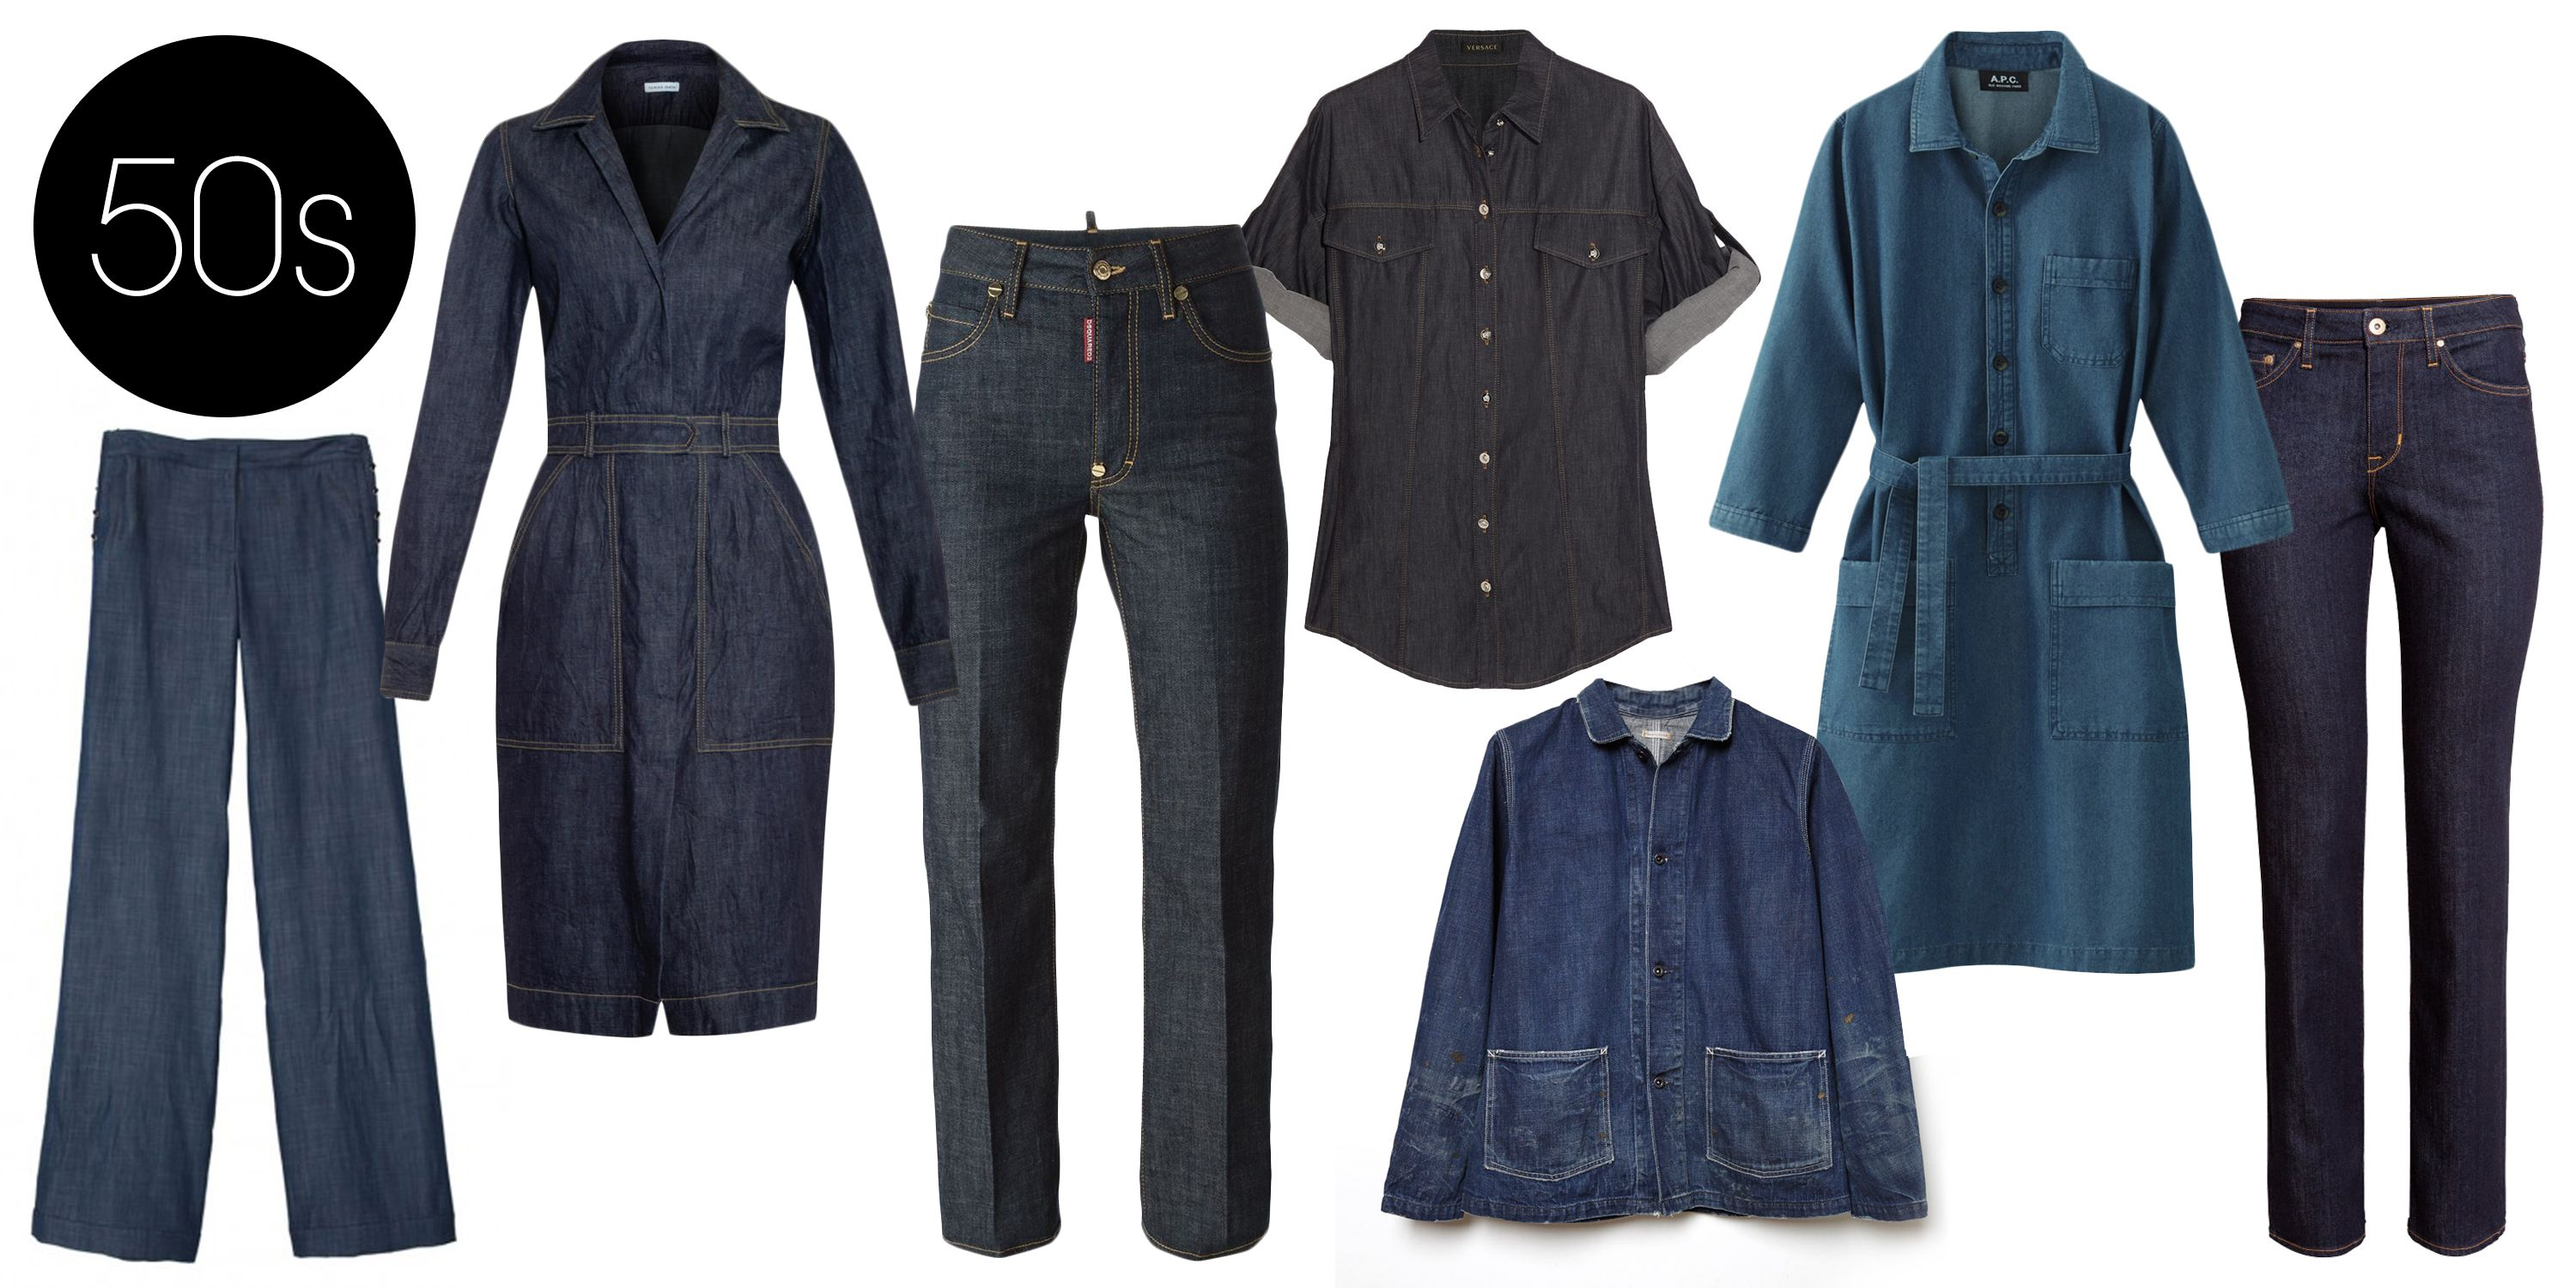 "<p>While the first pair of women's jeans was made in 1934, the popularity of the dark wash and stiff fabric in the '50s marked the beginning of fashionable denim. </p> <p>Chimala Unisex Denim Coverall, $575;<a href=""http://www.lagarconne.com/store/item.htm?itemid=29975&sid=&pid=&utm_source=shopstyle&utm_medium=cpc&utm_campaign=shopstyle""> lagarconne.com</a></p> <p>Tomas Maier Crinkled-denim Dress, $495; <a href=""http://www.matchesfashion.com/product/1007781"">matchesfashion.com</a> </p> <p>Versace Denim Shirt, $487; <a href=""http://www.theoutnet.com/en-US/product/Versace/Denim-shirt/432103?cm_mmc=LinkshareUS-_-J84DHJLQkR4-_-Custom-_-LinkBuilder&siteID=J84DHJLQkR4-tk70KUpKq.rXoHWH6A8ICw"">theoutnet.com</a></p> <p>DSquared2 Dalma Jeans, $507; <a href=""http://www.farfetch.com/in/shopping/women/dsquared2-dalma-jeans-item-10903858.aspx?storeid=9336&ffref=lp_22_"">farfetch.com</a></p> <p>Tibi Rigid Denim Sailor Pants, $375; <a href=""http://www.tibi.com/shop/rigid-denim-sailor-pants"">tibi.com</a></p> <p>H&M Straight Regular Jeans, $40; <a href=""http://www.hm.com/us/product/87248?article=87248-A&fromSearch=denim&cm_vc=SEARCH"">hm.com</a></p>"